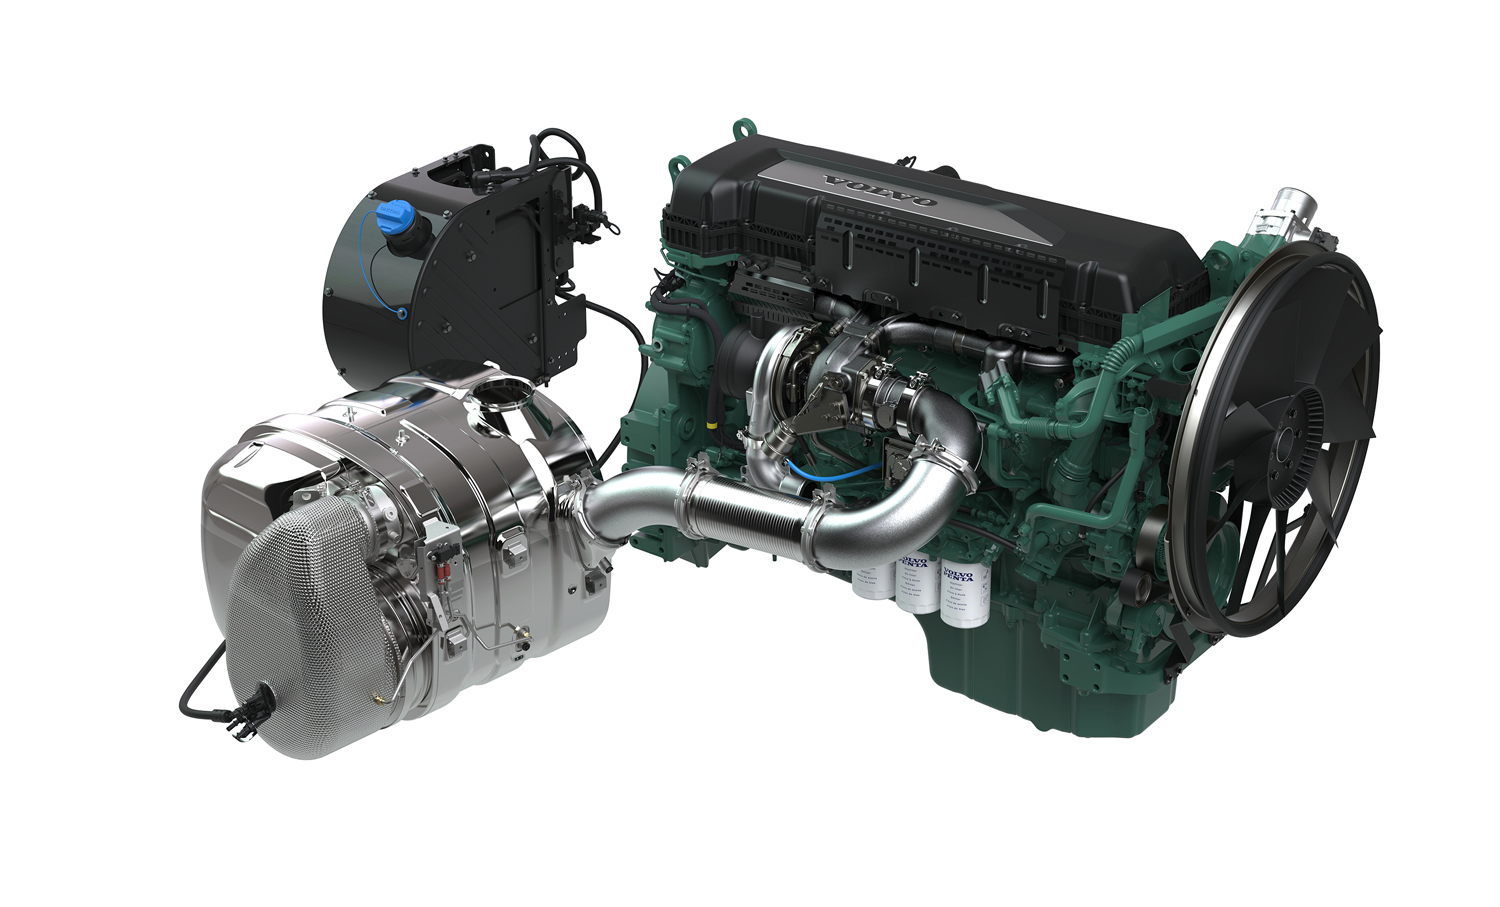 volvo penta introduces new china iv ready engine tech industrial Volvo Penta 130 Engine volvo penta introduces new china iv ready engine tech